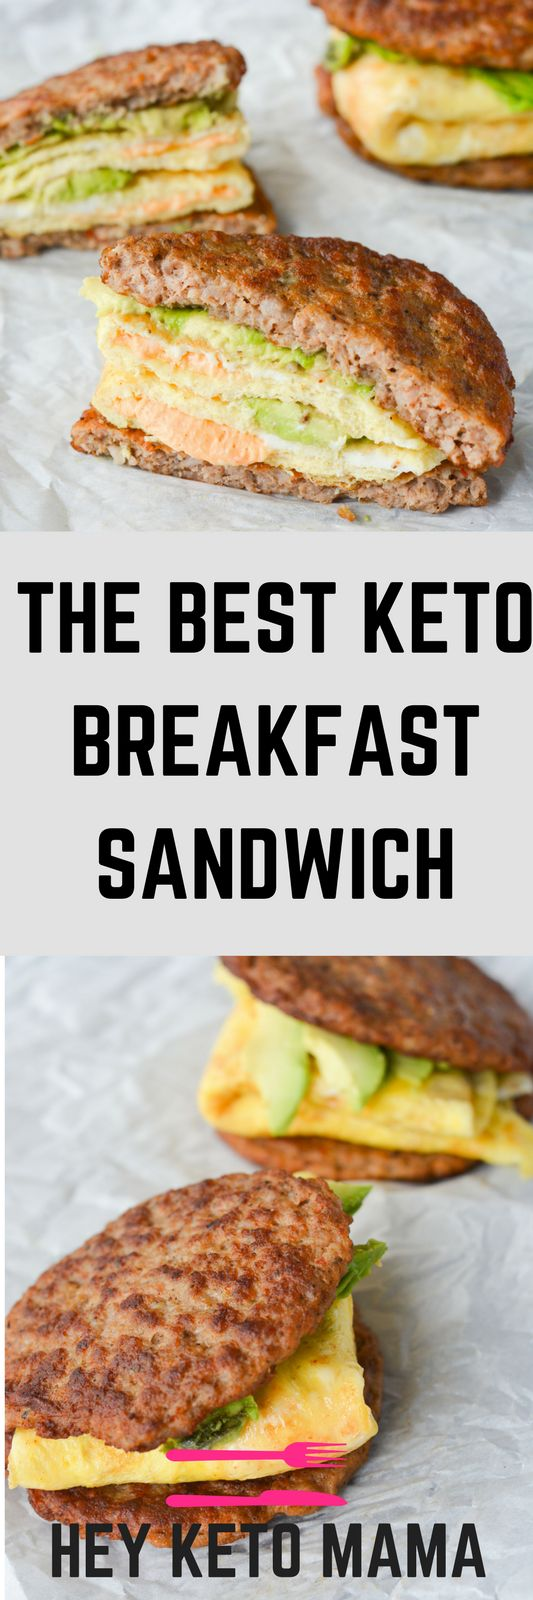 MY FAVORITE KETO BREAKFAST SANDWICH #FAVORITE #KETO #BREAKFAST #SANDWICH   #DESSERTS #HEALTHYFOOD #EASY_RECIPES #DINNER #LAUCH #DELICIOUS #EASY #HOLIDAYS #RECIPE #SPECIAL_DIET #WORLD_CUISINE #CAKE #GRILL #APPETIZERS #HEALTHY_RECIPES #DRINKS #COOKING_METHOD #ITALIAN_RECIPES #MEAT #VEGAN_RECIPES #COOKIES #PASTA #FRUIT #SALAD #SOUP_APPETIZERS #NON_ALCOHOLIC_DRINKS #MEAL_PLANNING #VEGETABLES #SOUP #PASTRY #CHOCOLATE #DAIRY #ALCOHOLIC_DRINKS #BULGUR_SALAD #BAKING #SNACKS #BEEF_RECIPES #MEAT_APPETIZERS #MEXICAN_RECIPES #BREAD #ASIAN_RECIPES #SEAFOOD_APPETIZERS #MUFFINS #BREAKFAST_AND_BRUNCH #CONDIMENTS #CUPCAKES #CHEESE #CHICKEN_RECIPES #PIE #COFFEE #NO_BAKE_DESSERTS #HEALTHY_SNACKS #SEAFOOD #GRAIN #LUNCHES_DINNERS #MEXICAN #QUICK_BREAD #LIQUOR